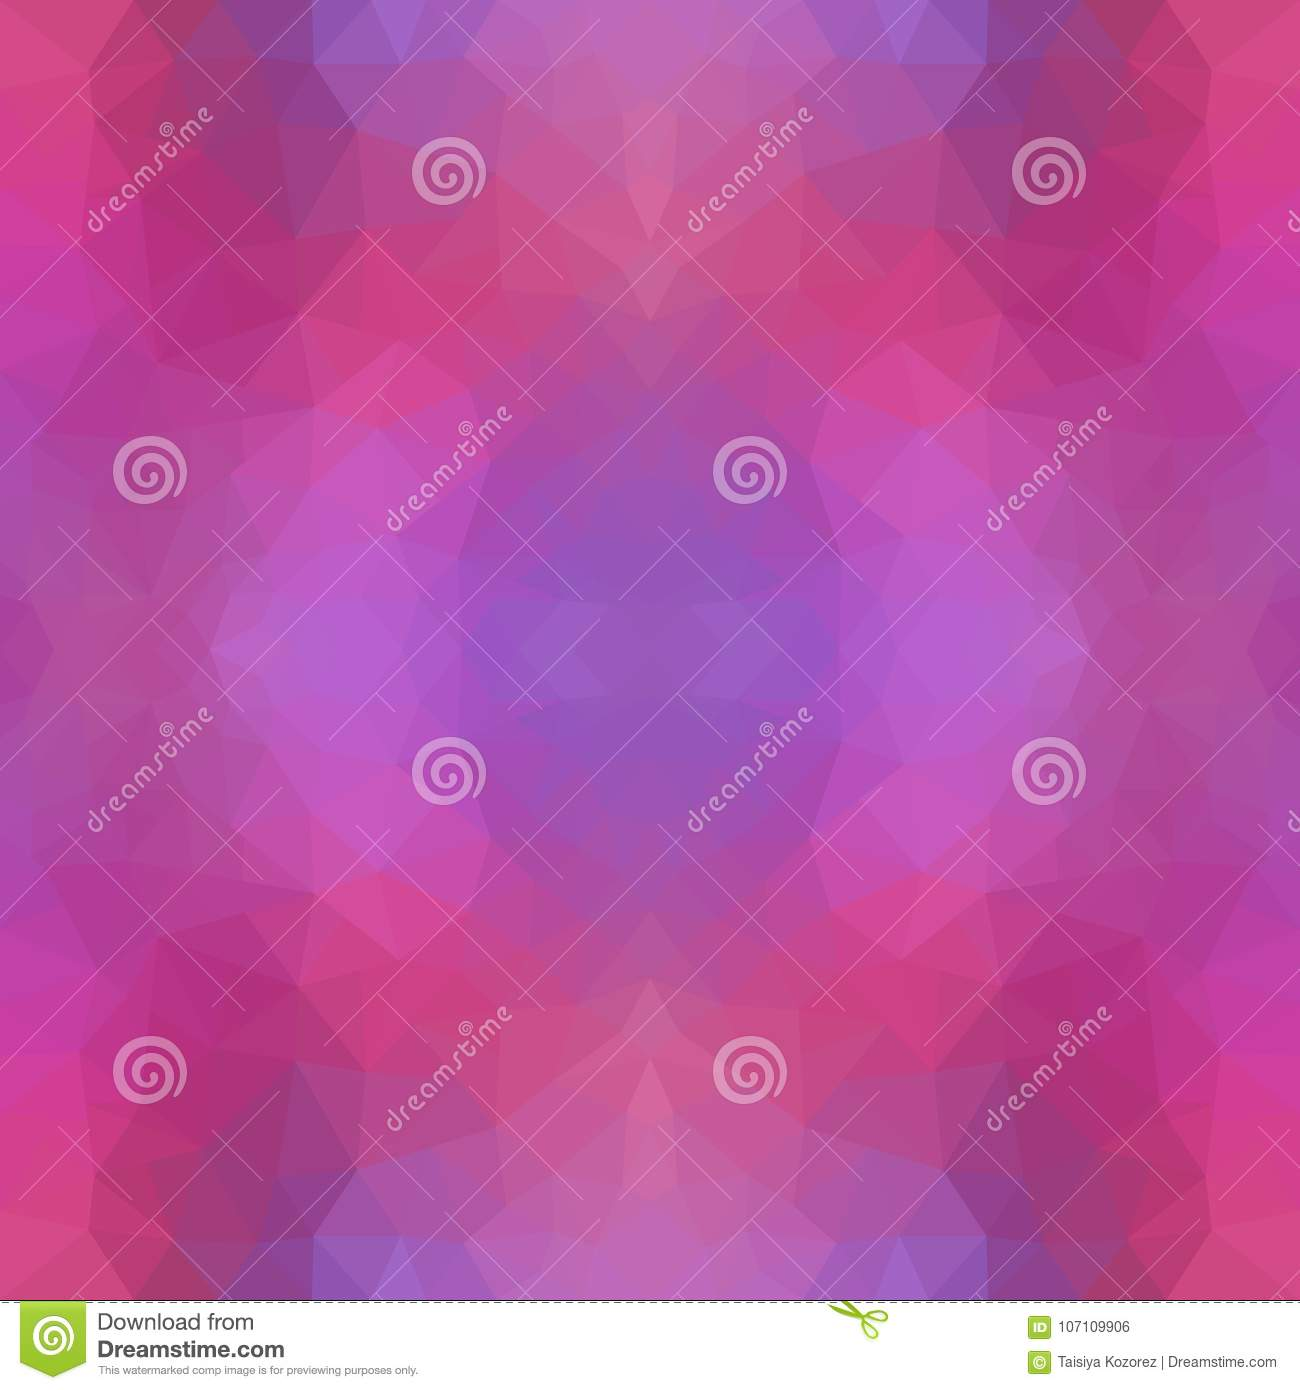 Multicolor purple, pink polygonal illustration, which consist of triangles. Geometric pattern in Origami style with